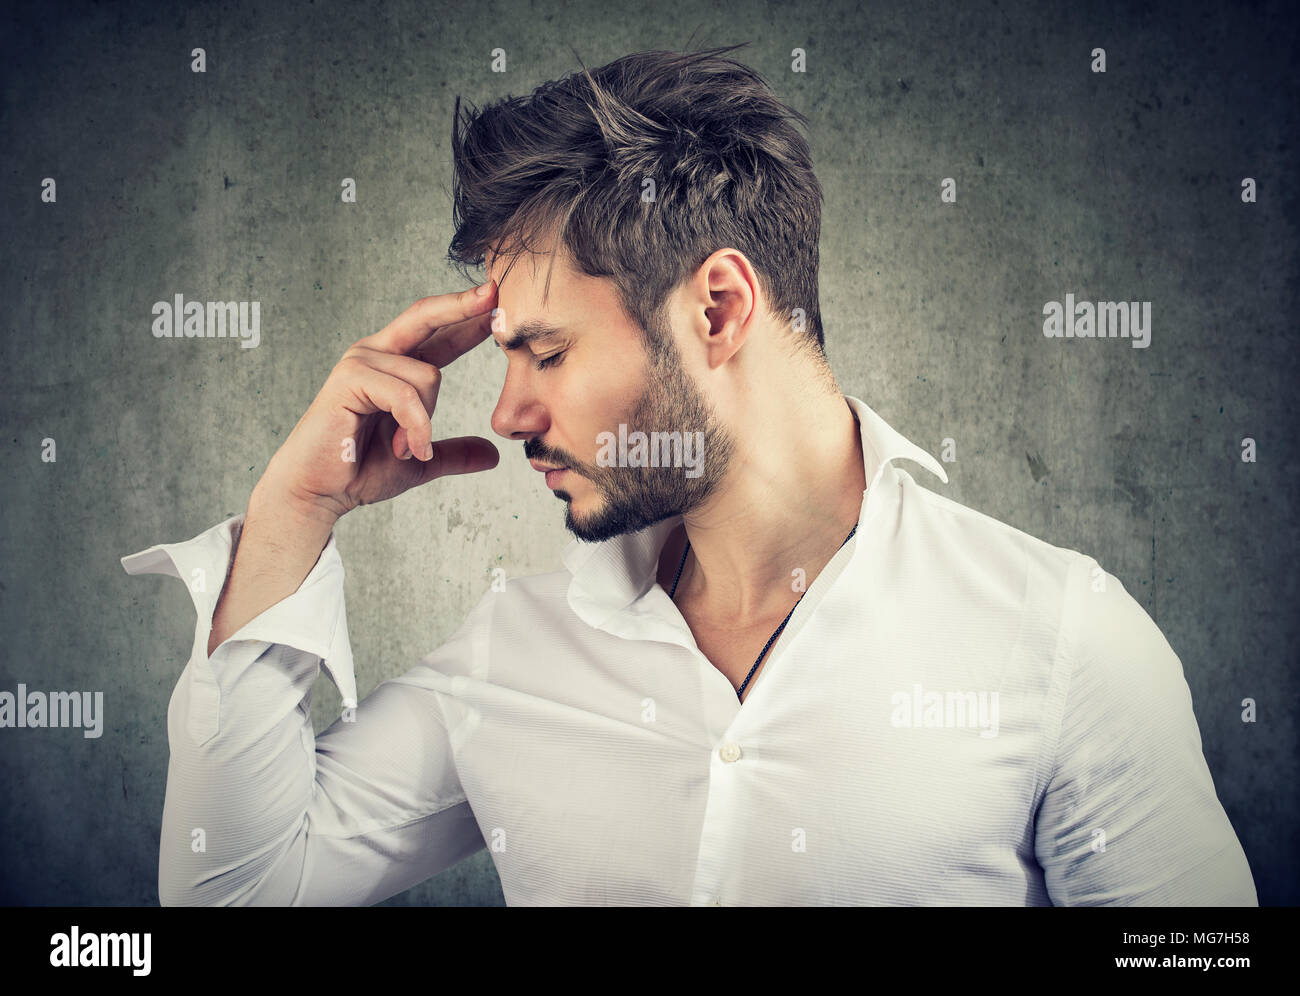 Formal man touching forehead thinking deeply and looking for solution. - Stock Image